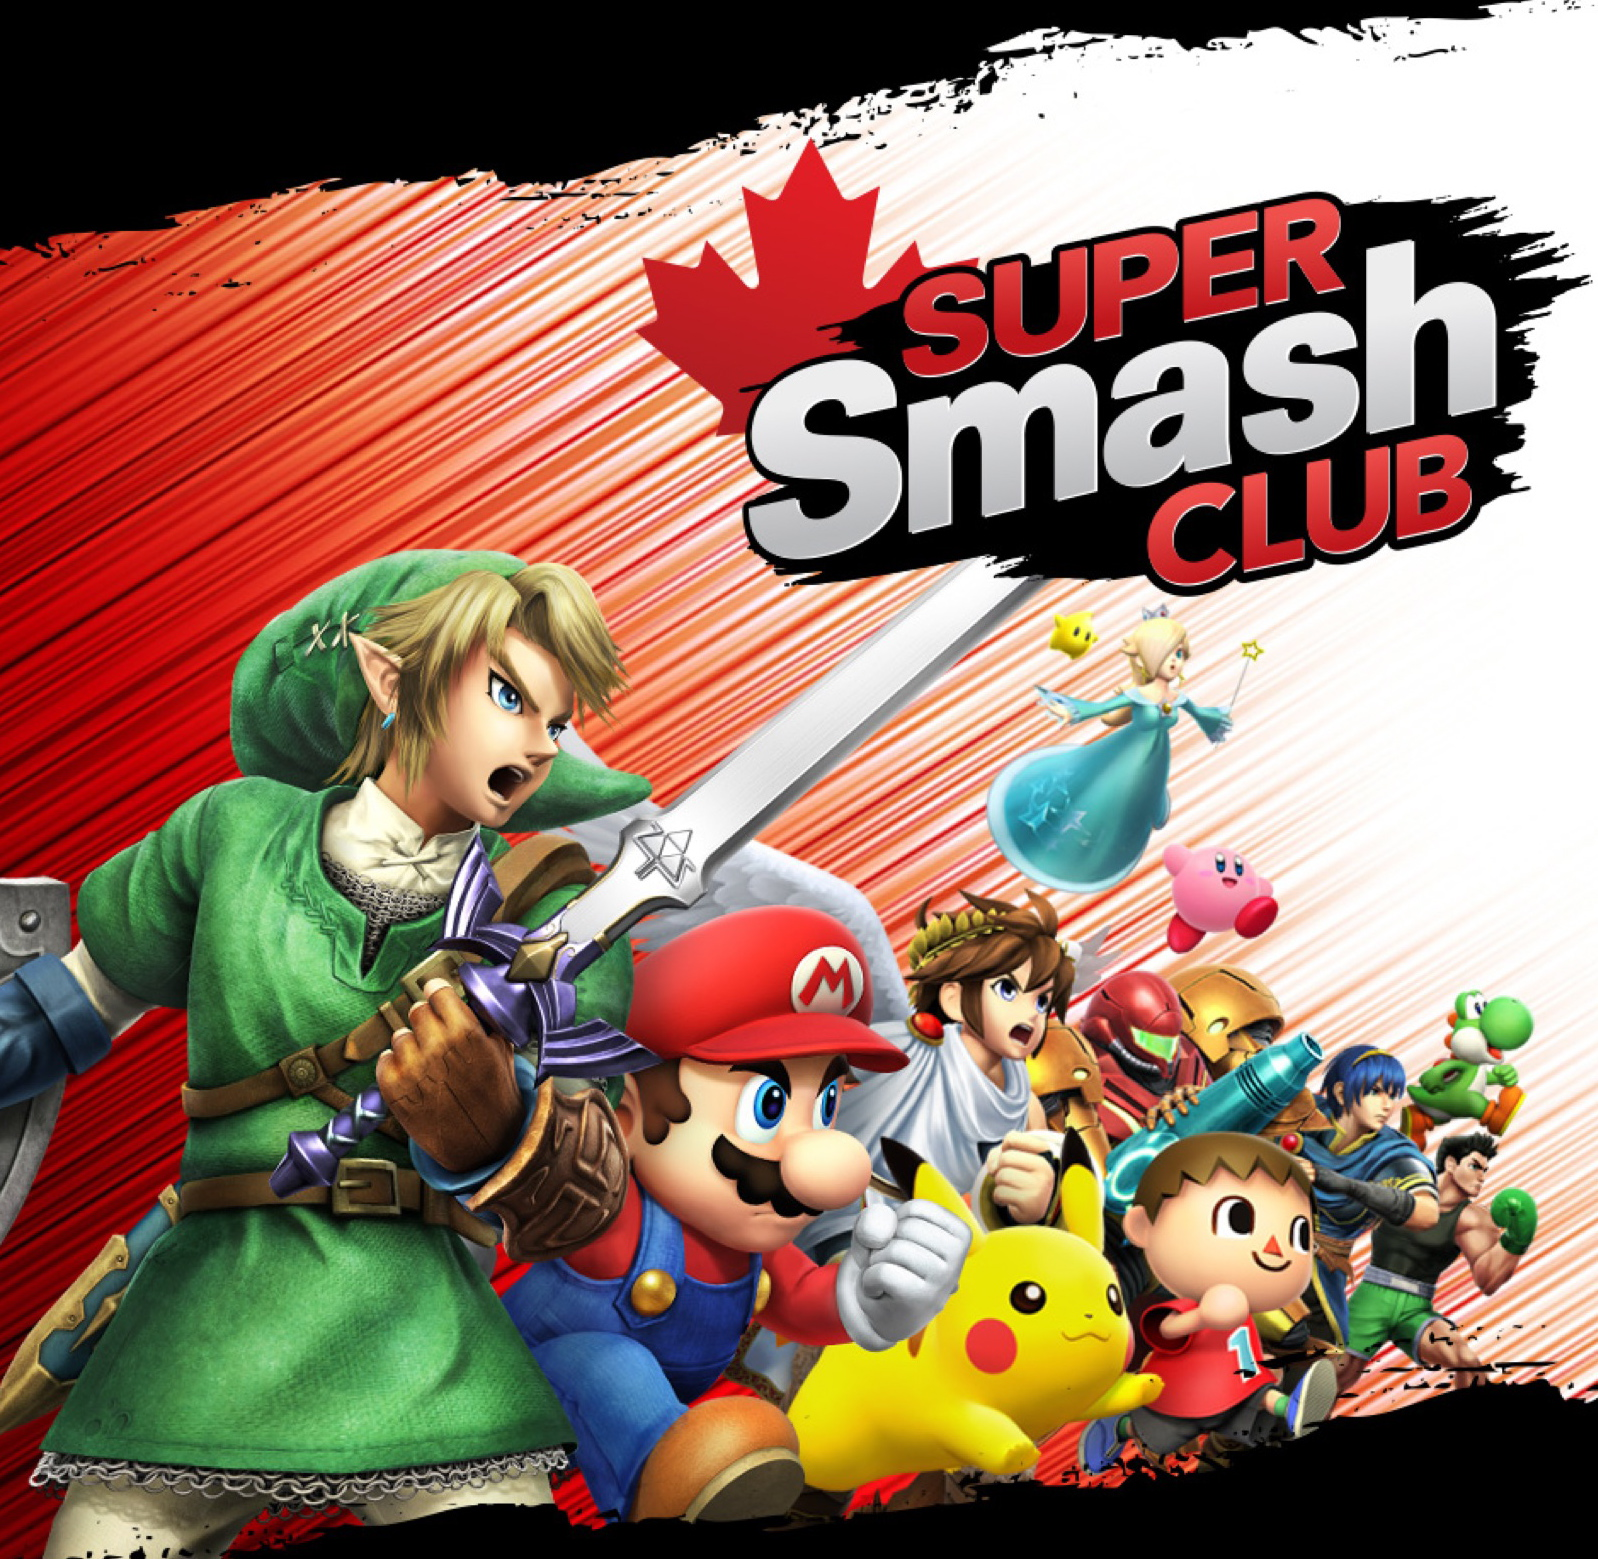 Calling All Nintendo Super Smash Bros. Fans!